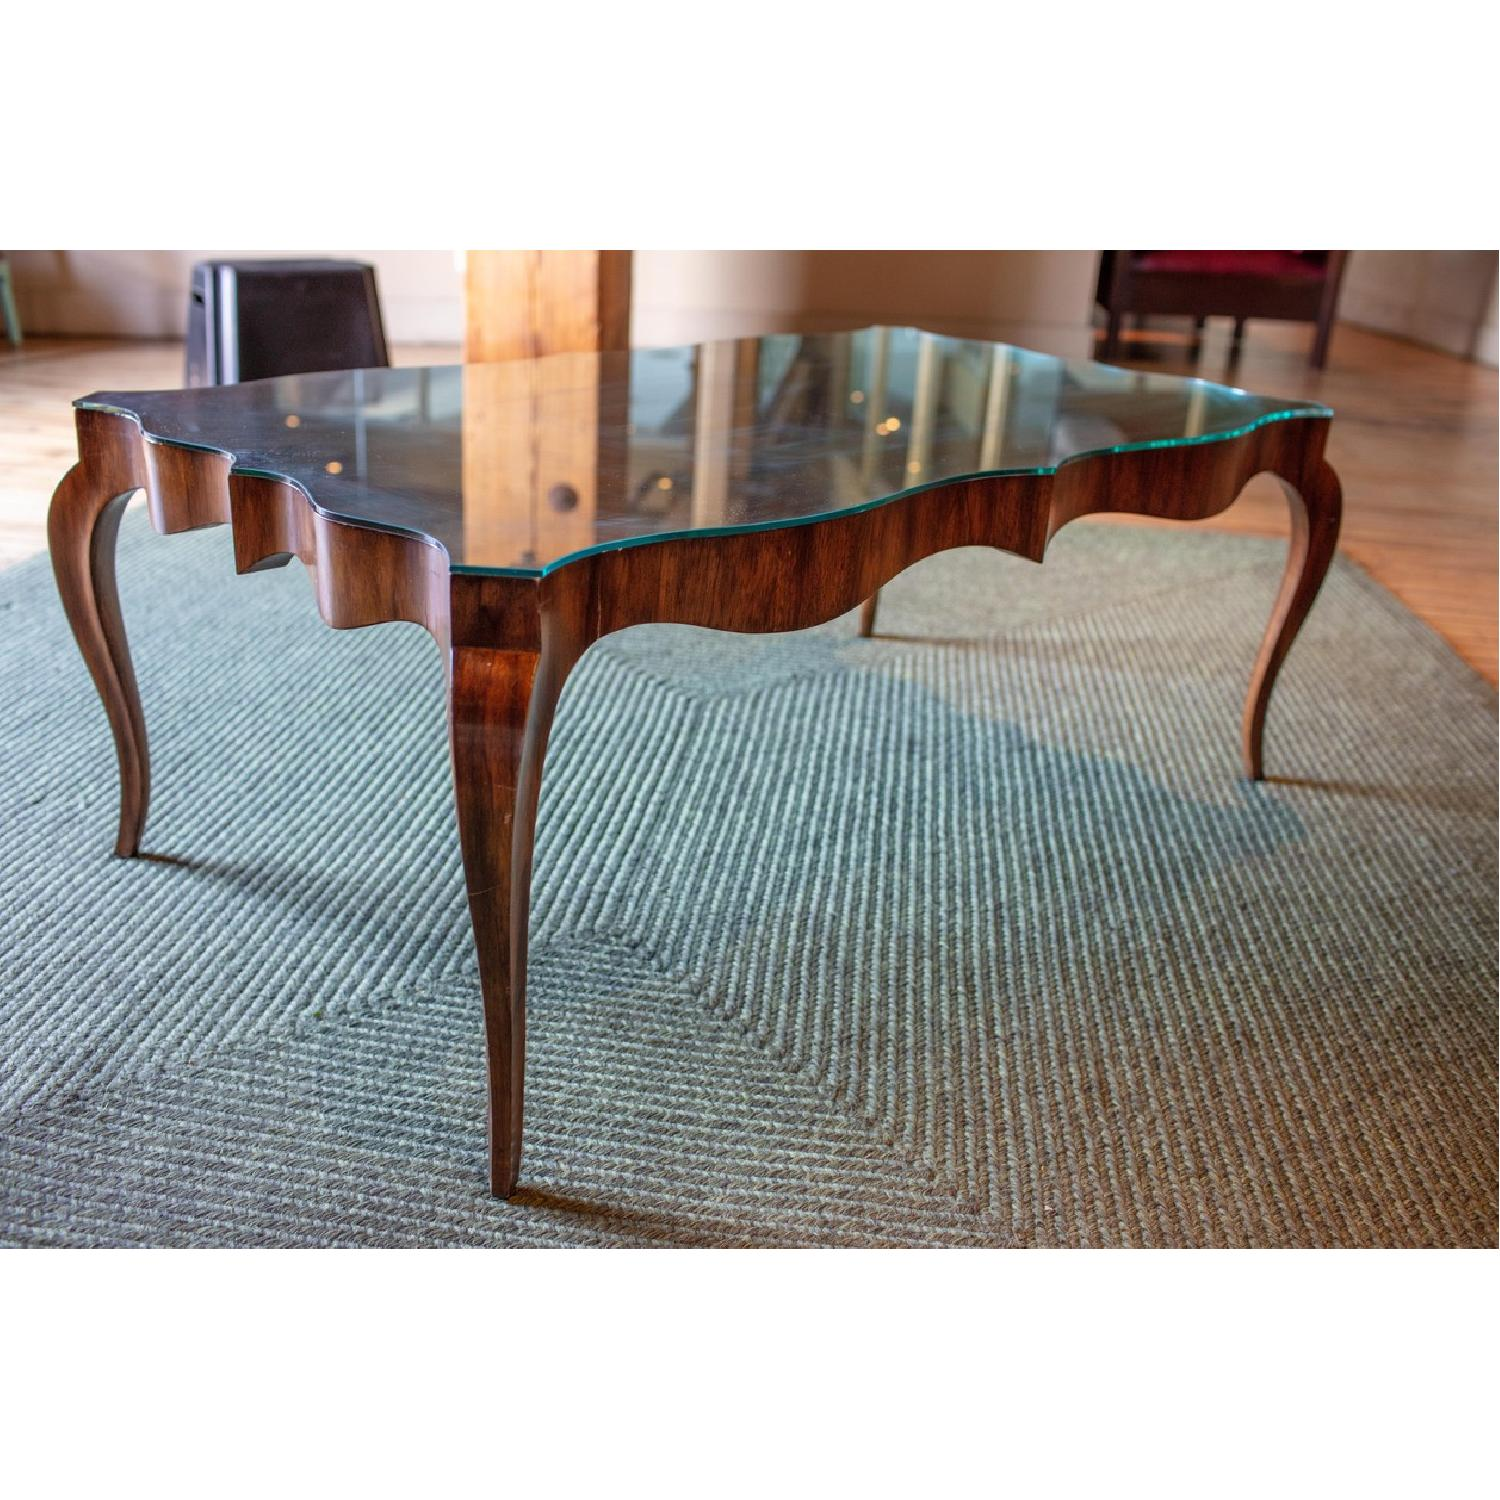 Theodore Alexander by Keno Bros Fine Point II Coffee Table - image-5